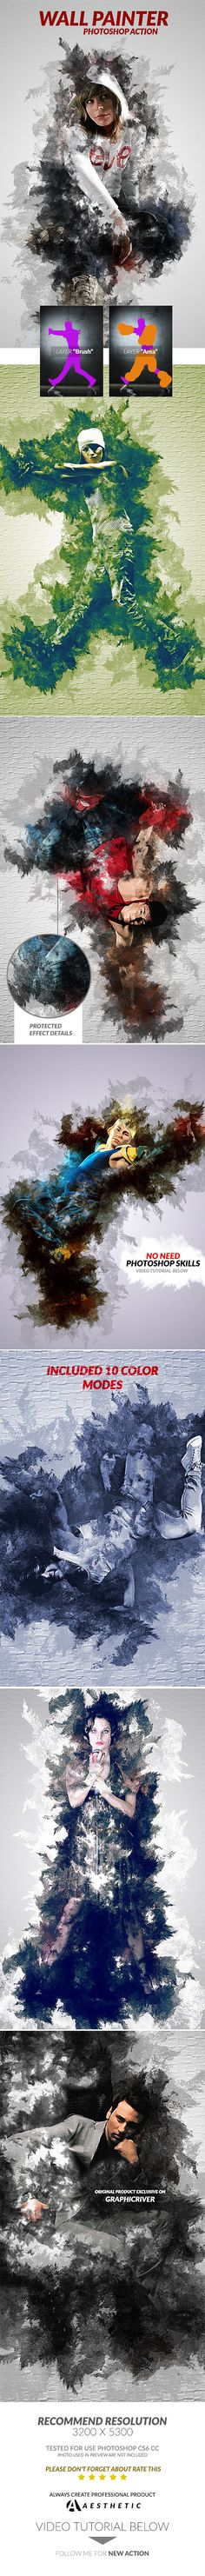 Wall Painter Photoshop Action